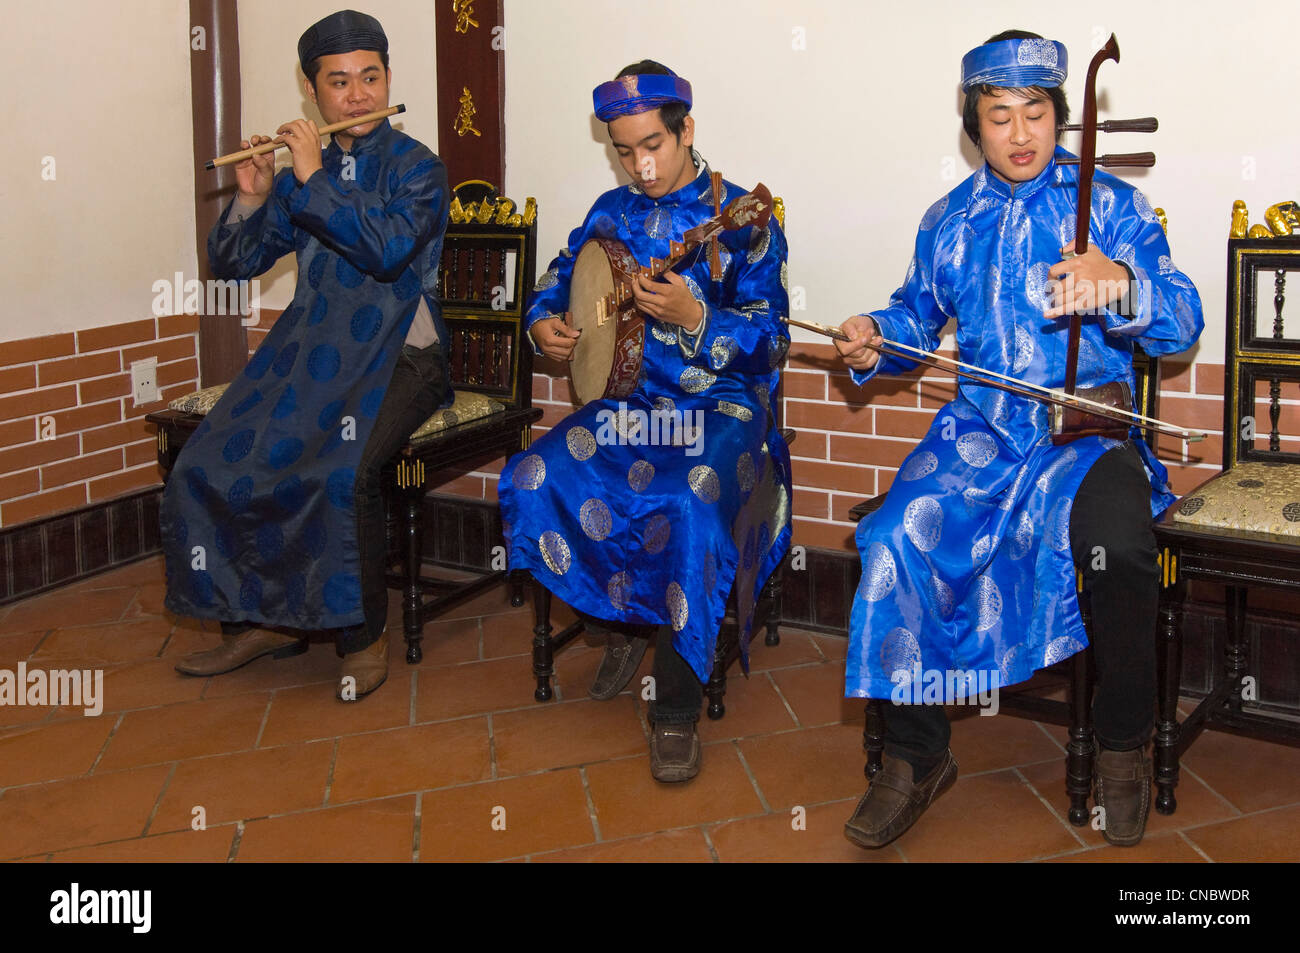 Horizontal view of a traditional Vietnamese musicians playing and singing traditional folklore songs in costume. - Stock Image